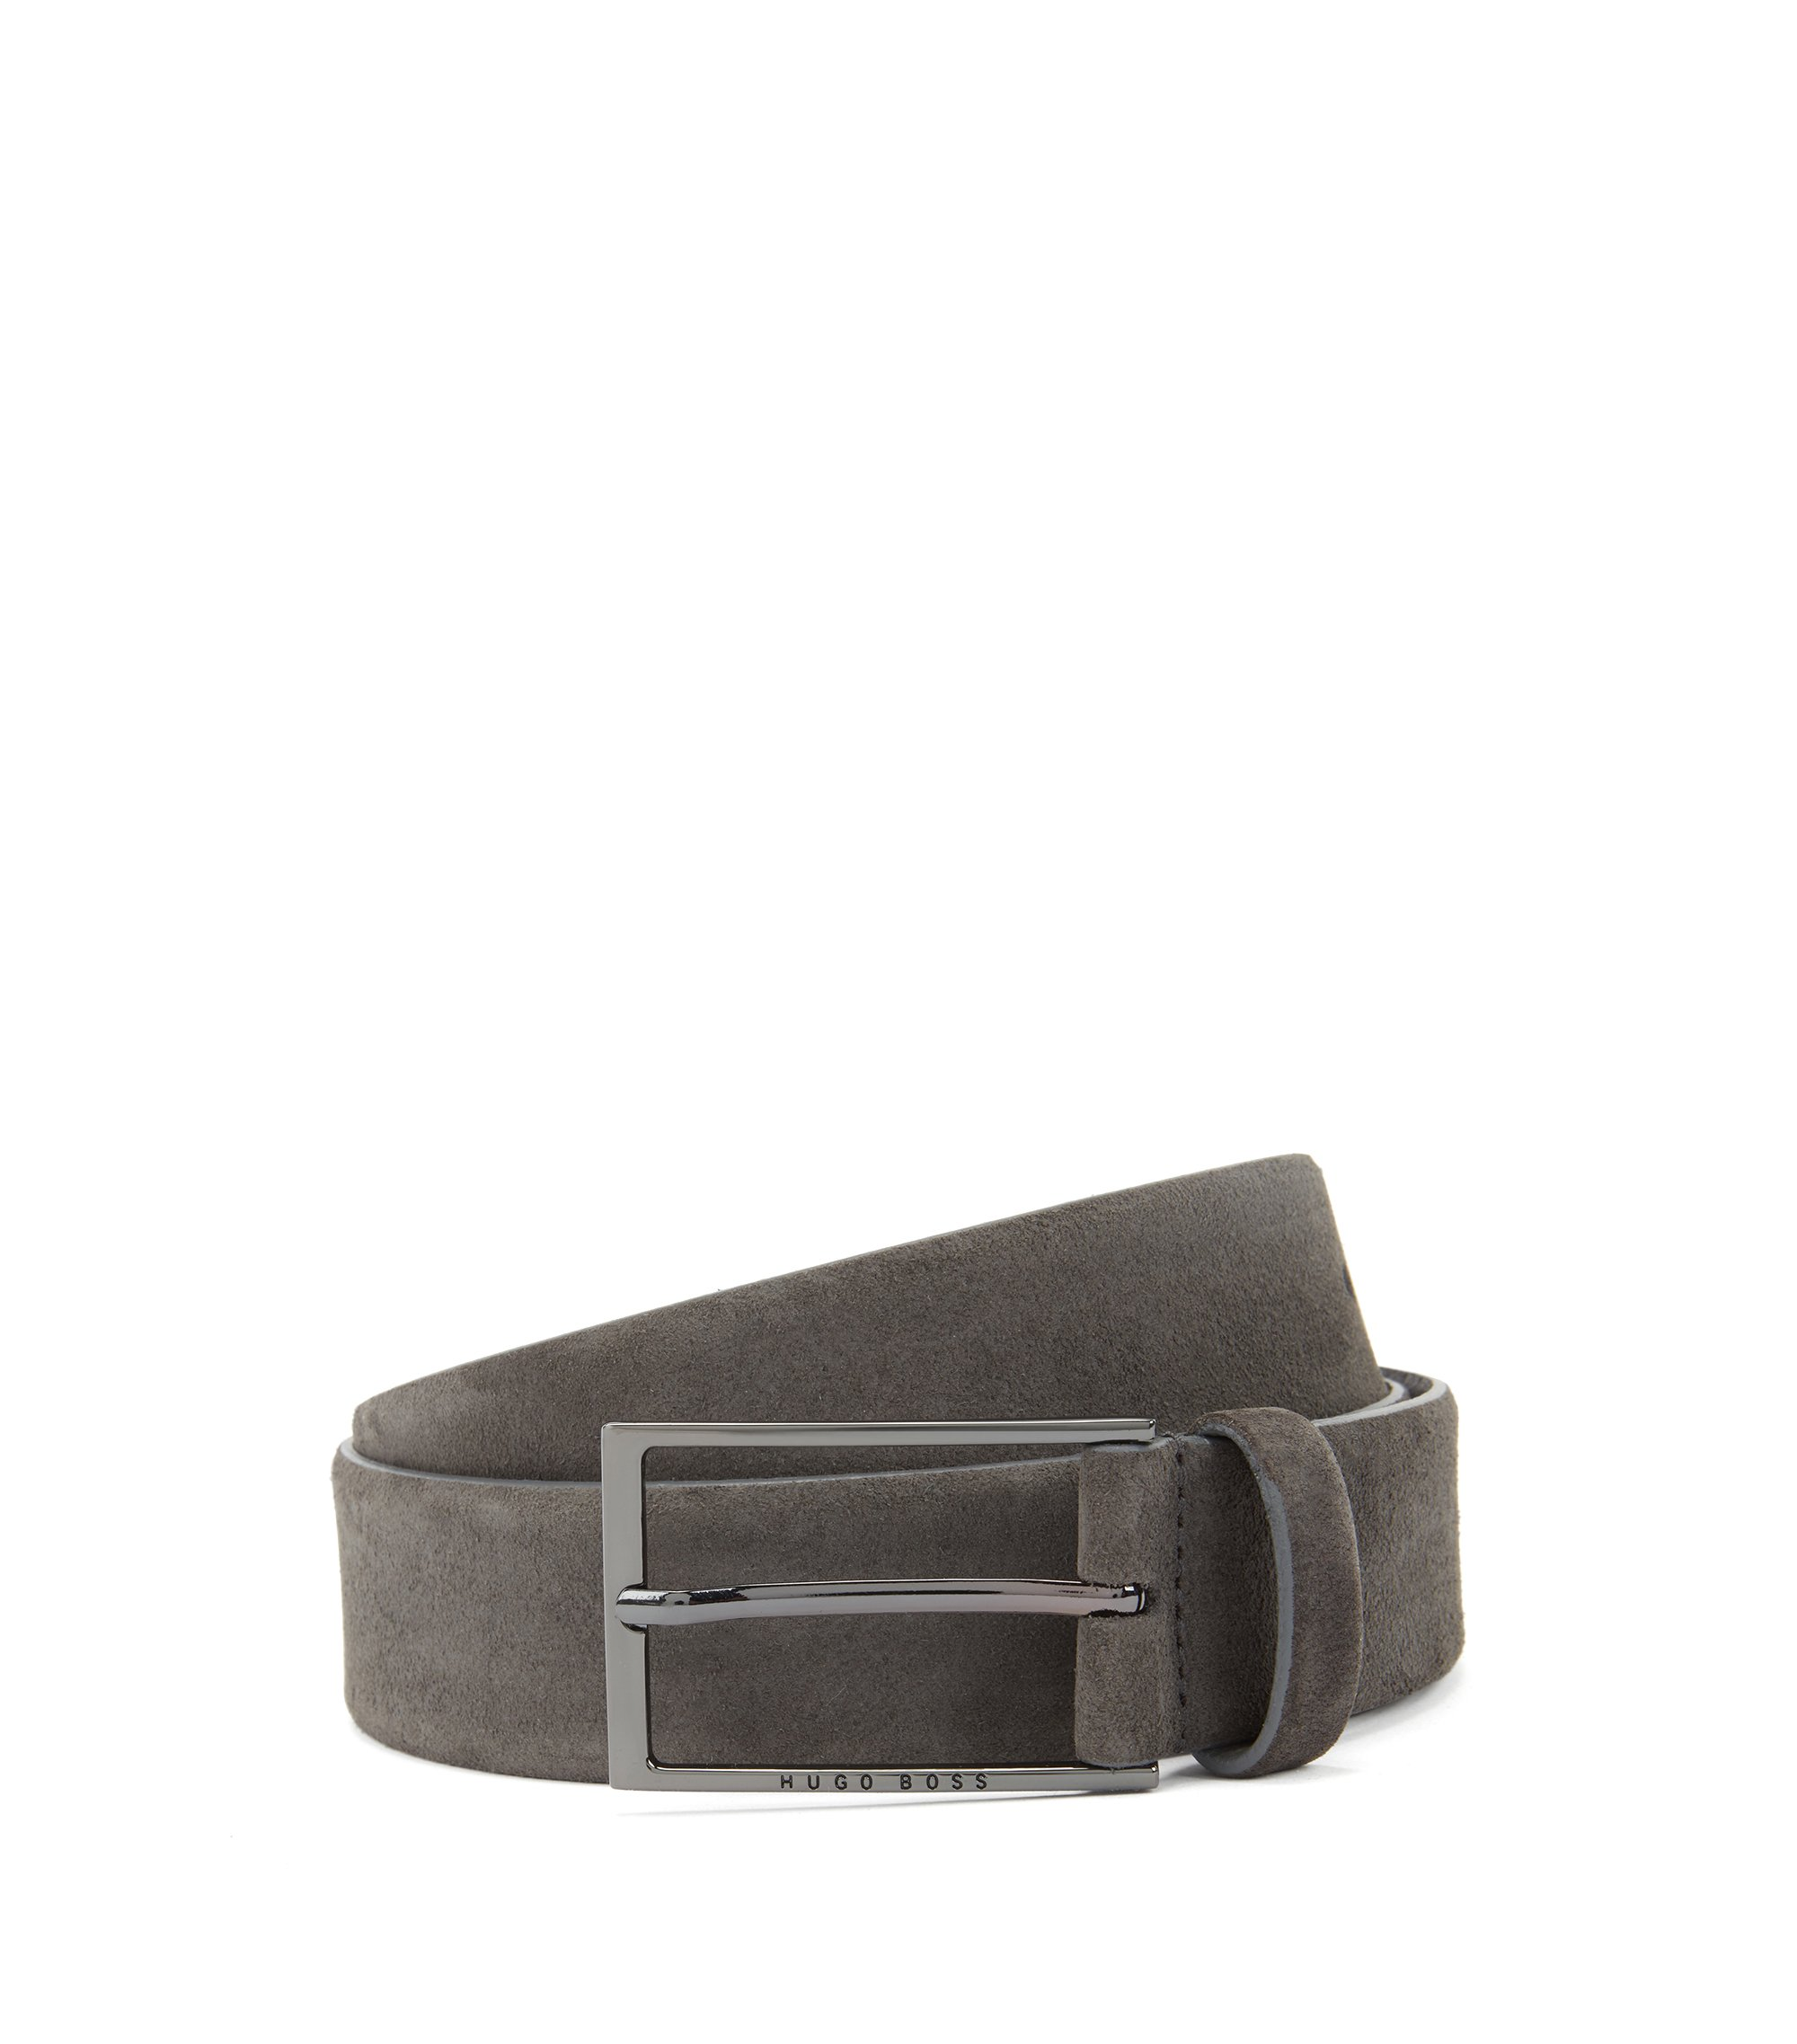 Soft suede leather belt with polished gunmetal pin buckle, Dark Grey